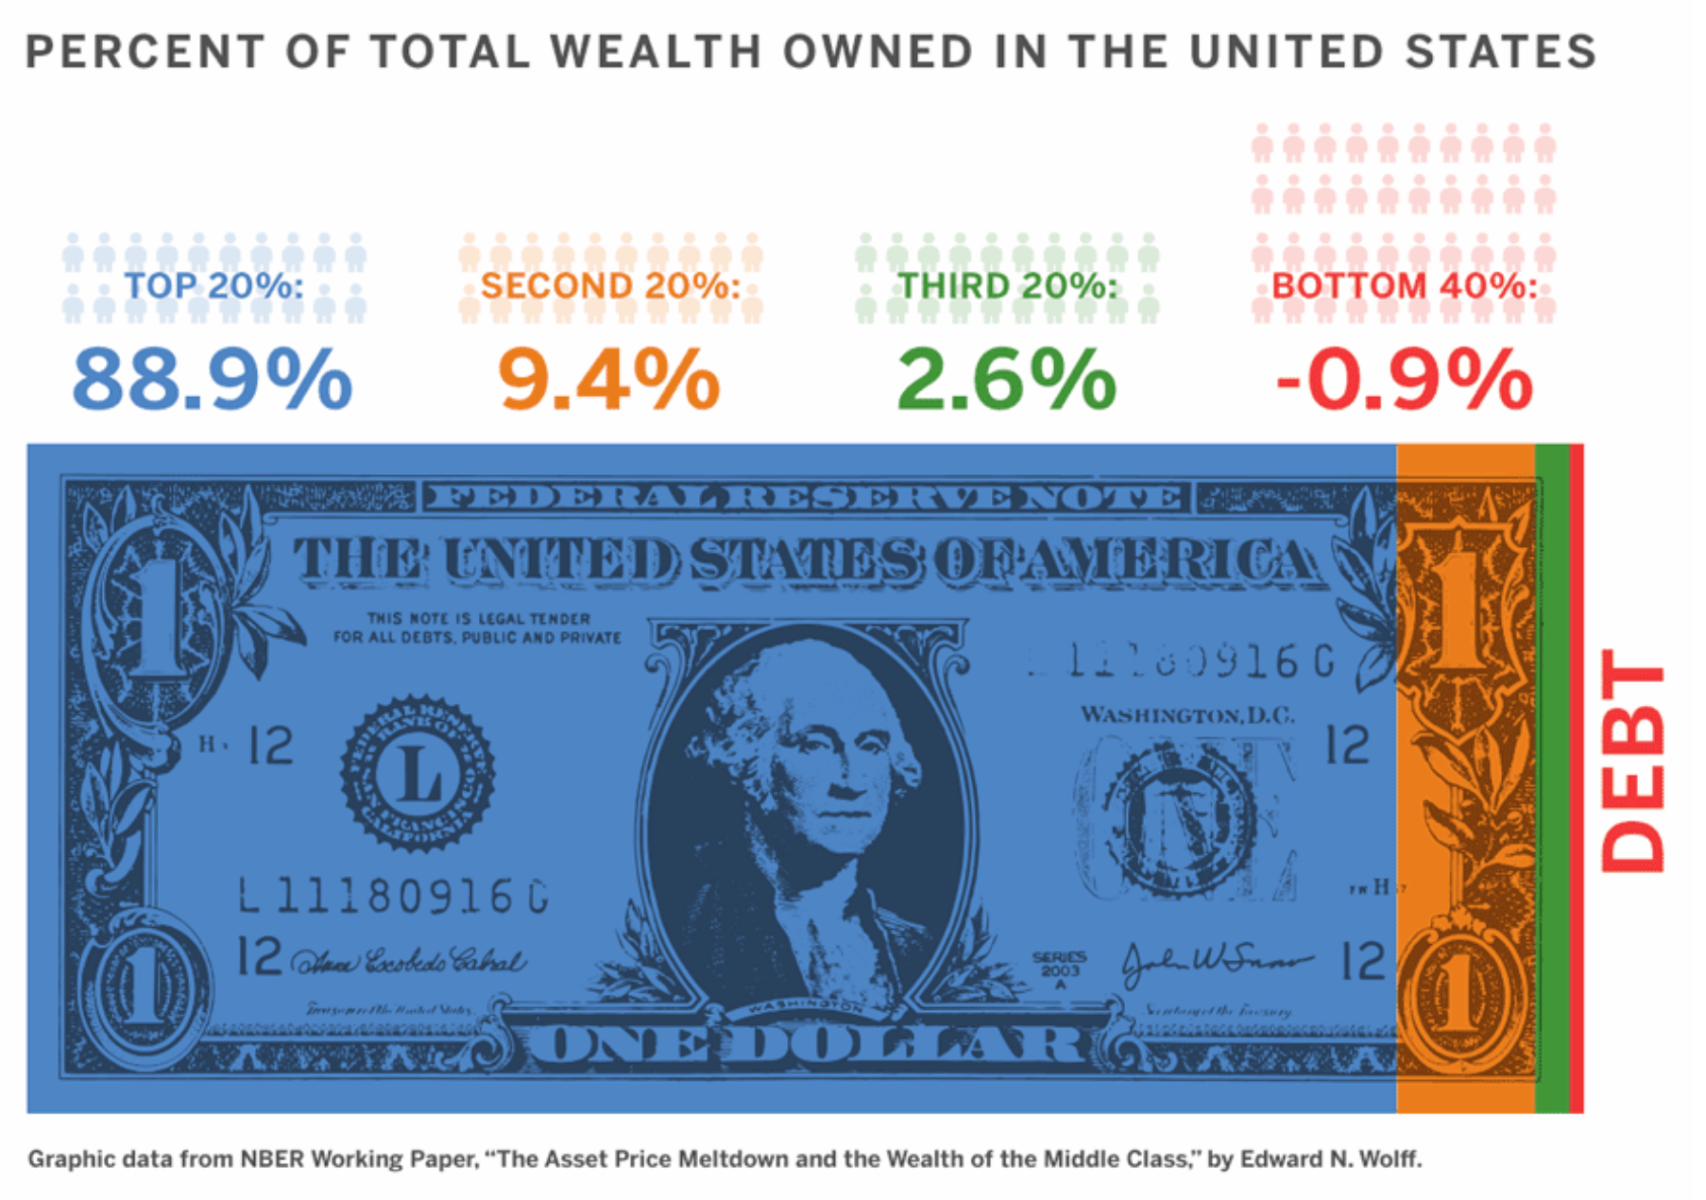 Percent Of Total Wealth Owned In The United States